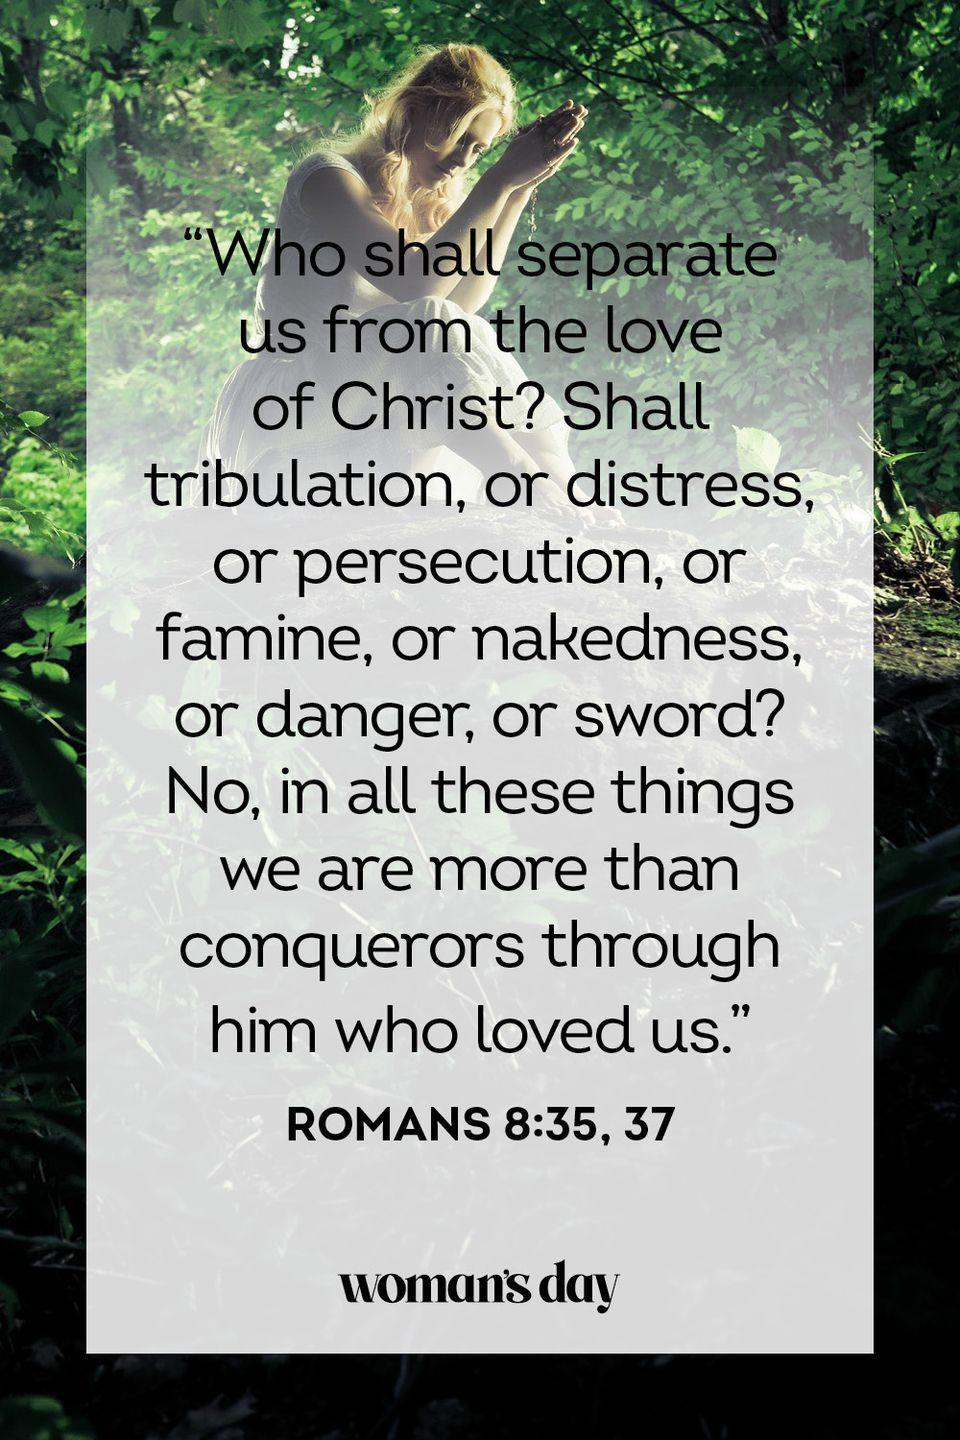 "<p>""Who shall separate us from the love of Christ? Shall tribulation, or distress, or persecution, or famine, or nakedness, or danger, or sword? No, in all these things we are more than conquerors through him who loved us.""</p><p><strong>The Good News: </strong>God gives us the power to overcome even the most daunting circumstances.</p>"